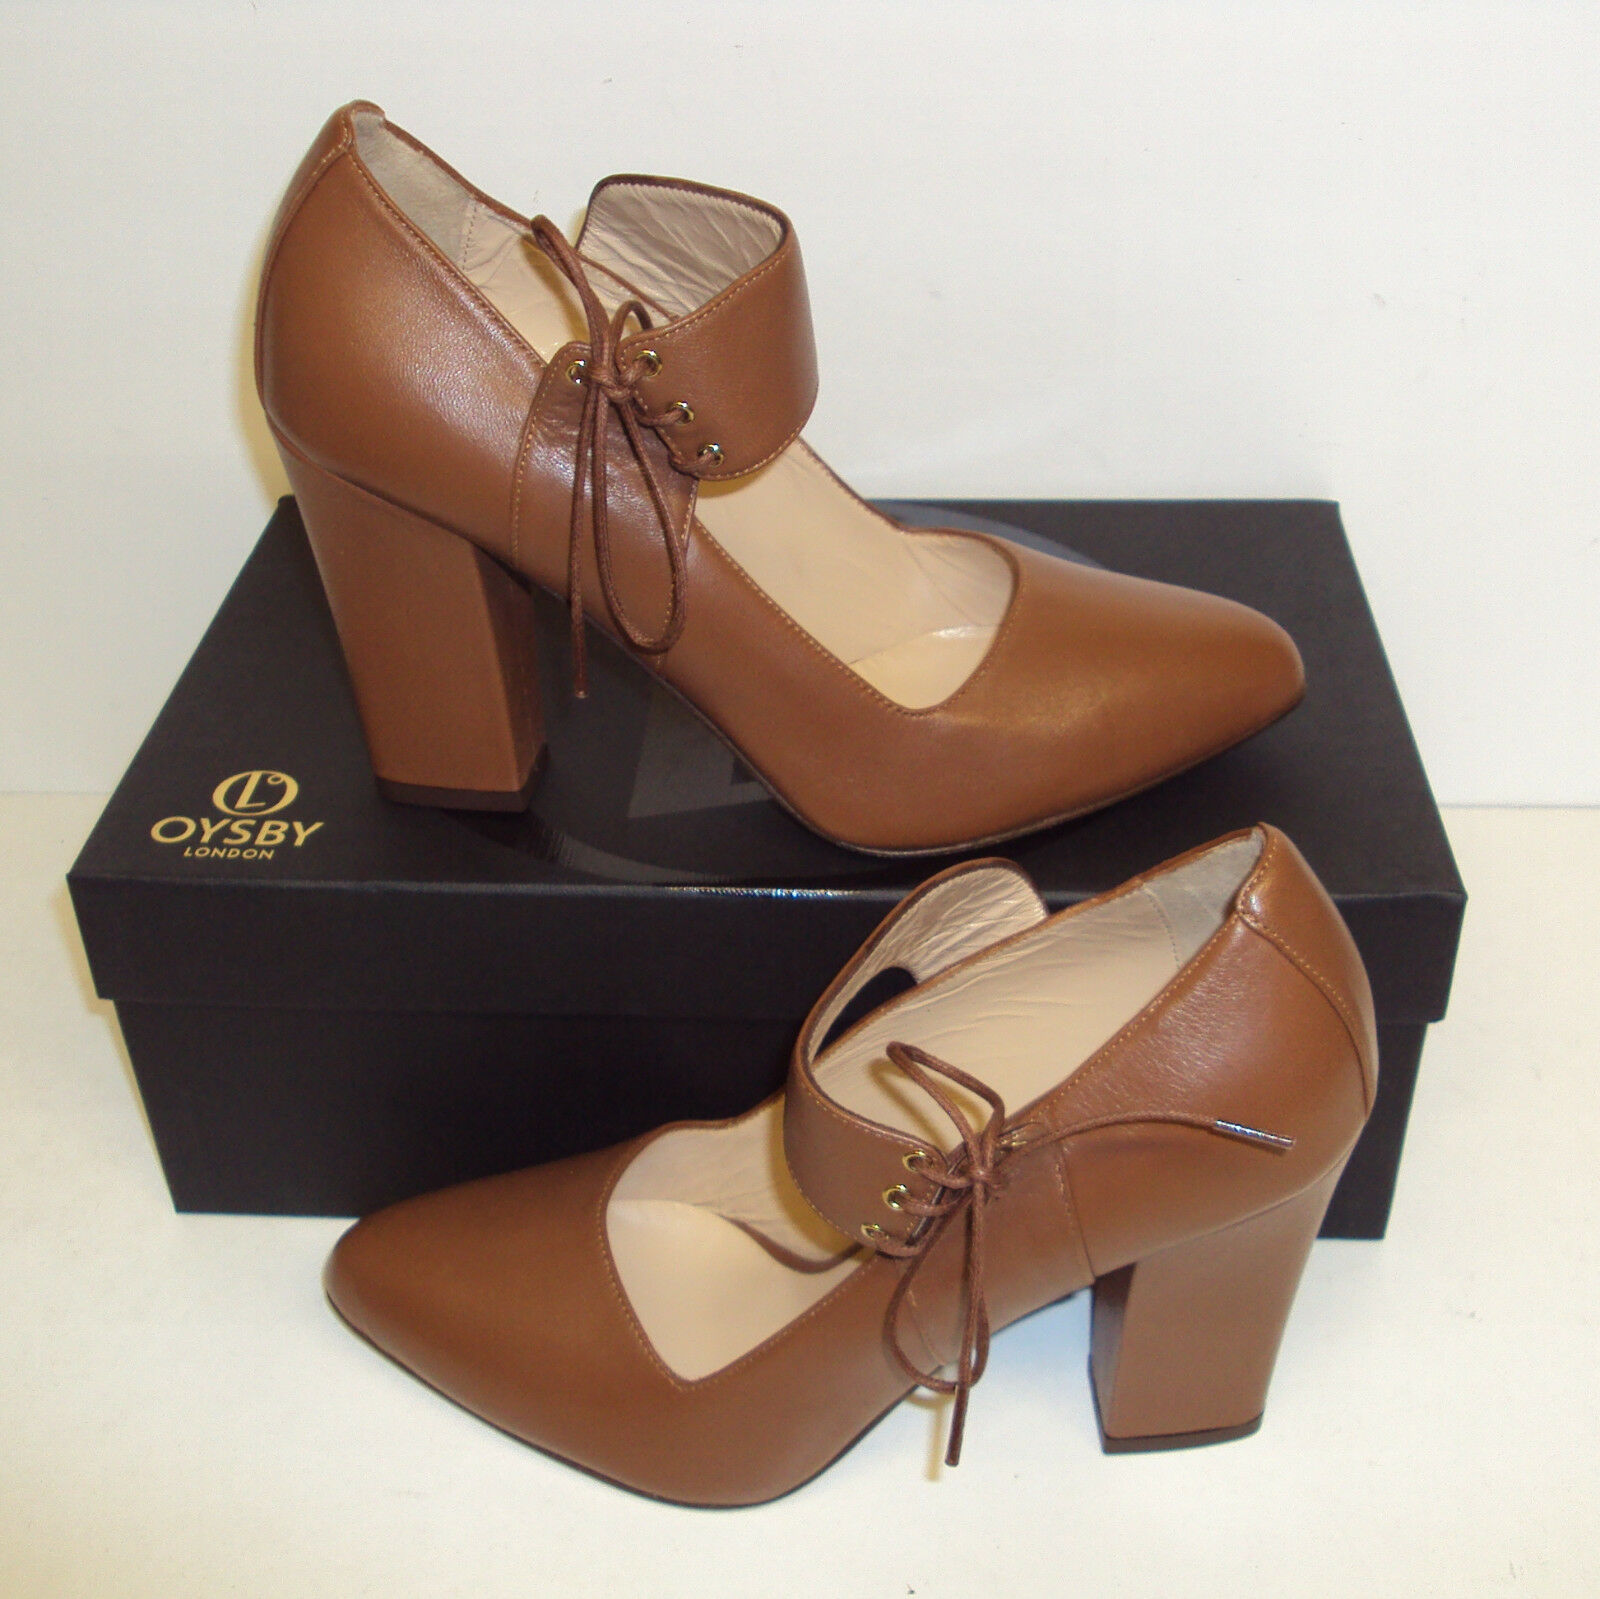 Oysby London Ladies 100% Leather MADE IN ITALY Tan Boots Heels   Size 3-8